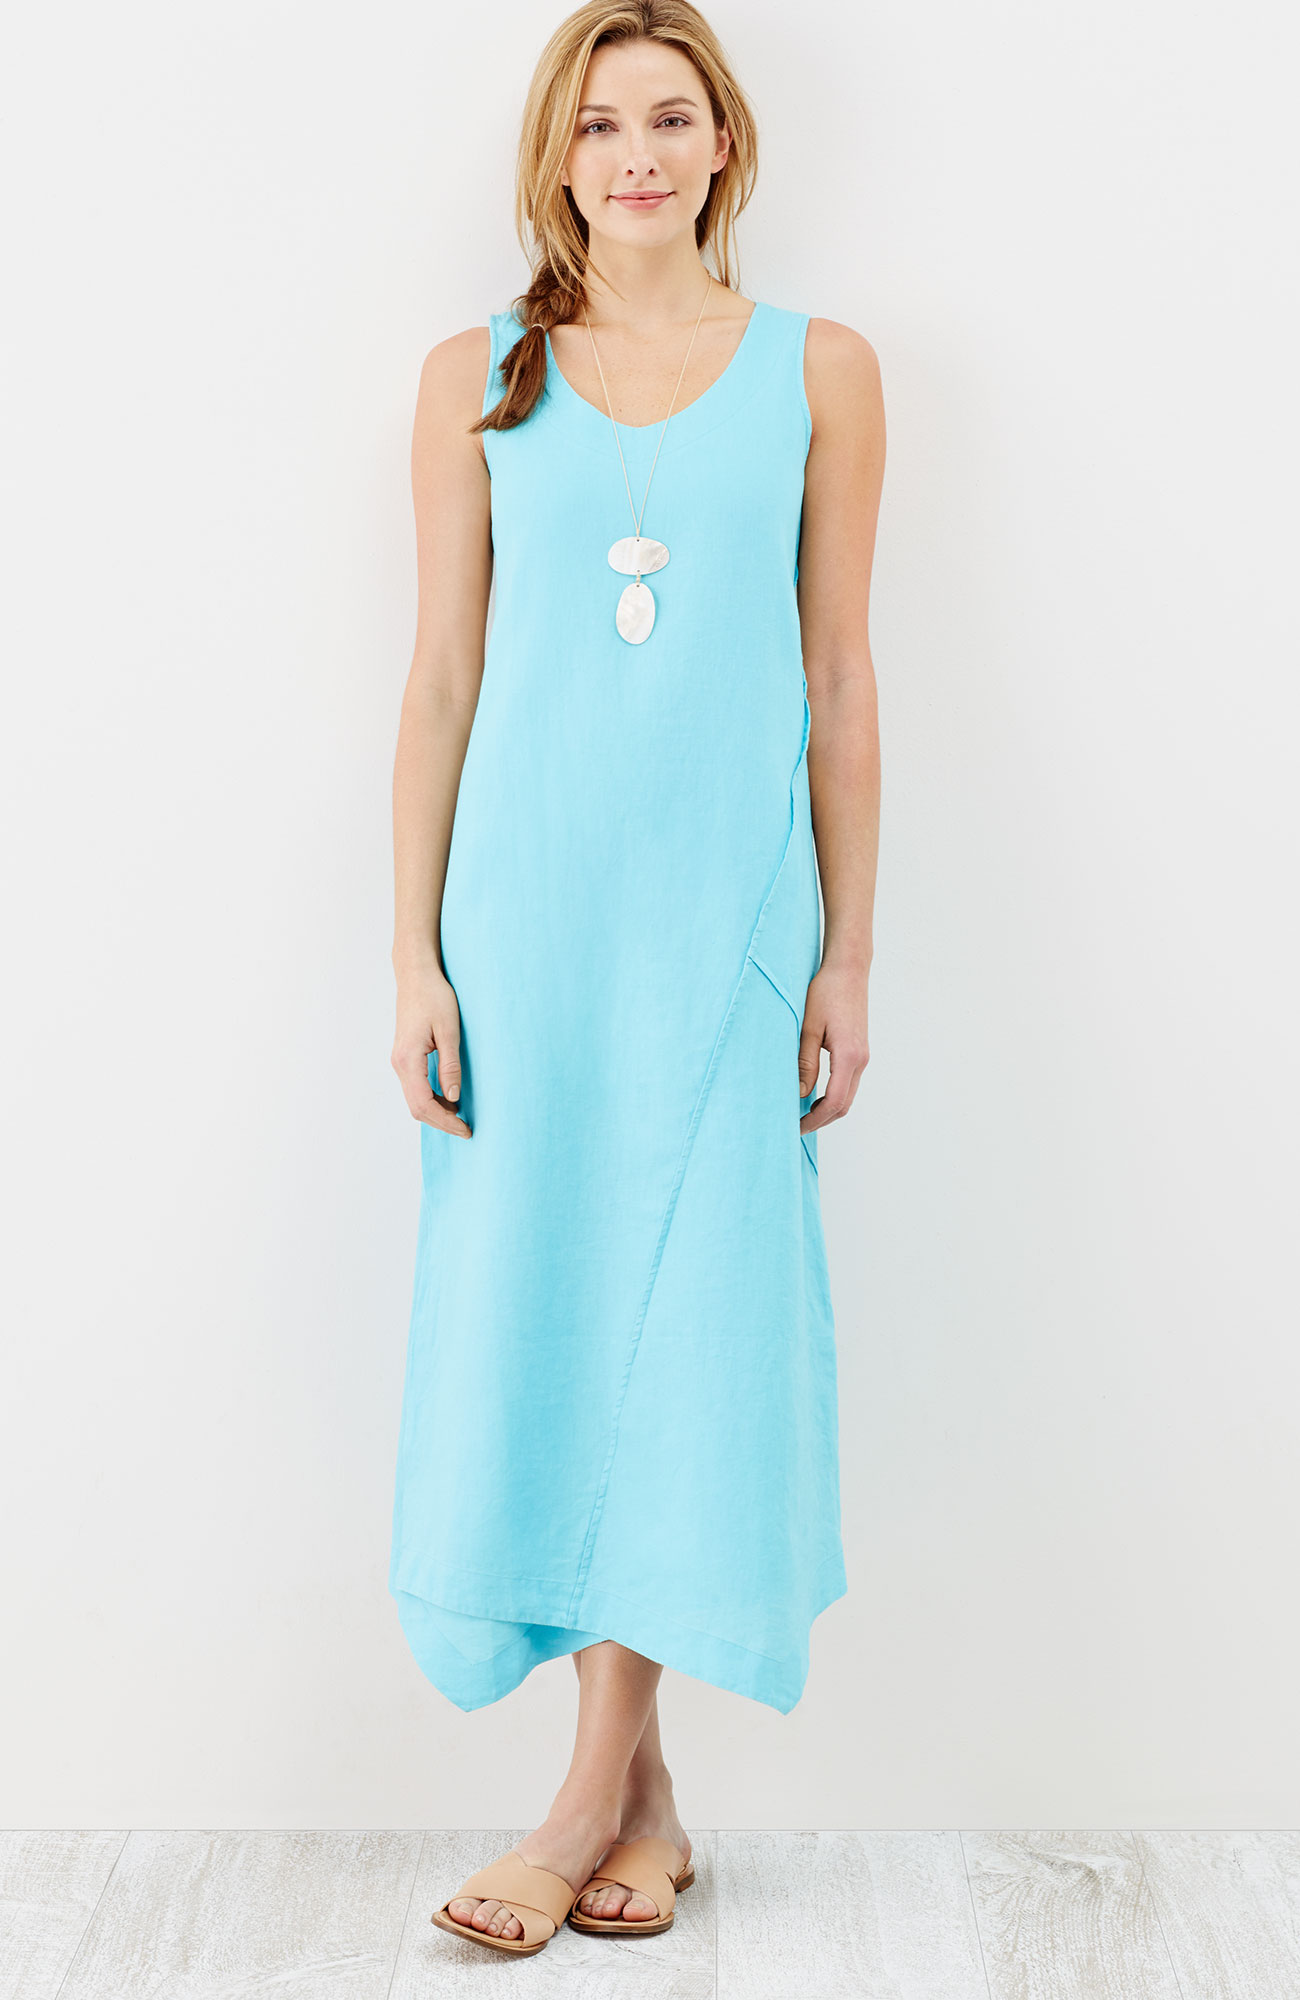 Pure Jill seamed wrap dress